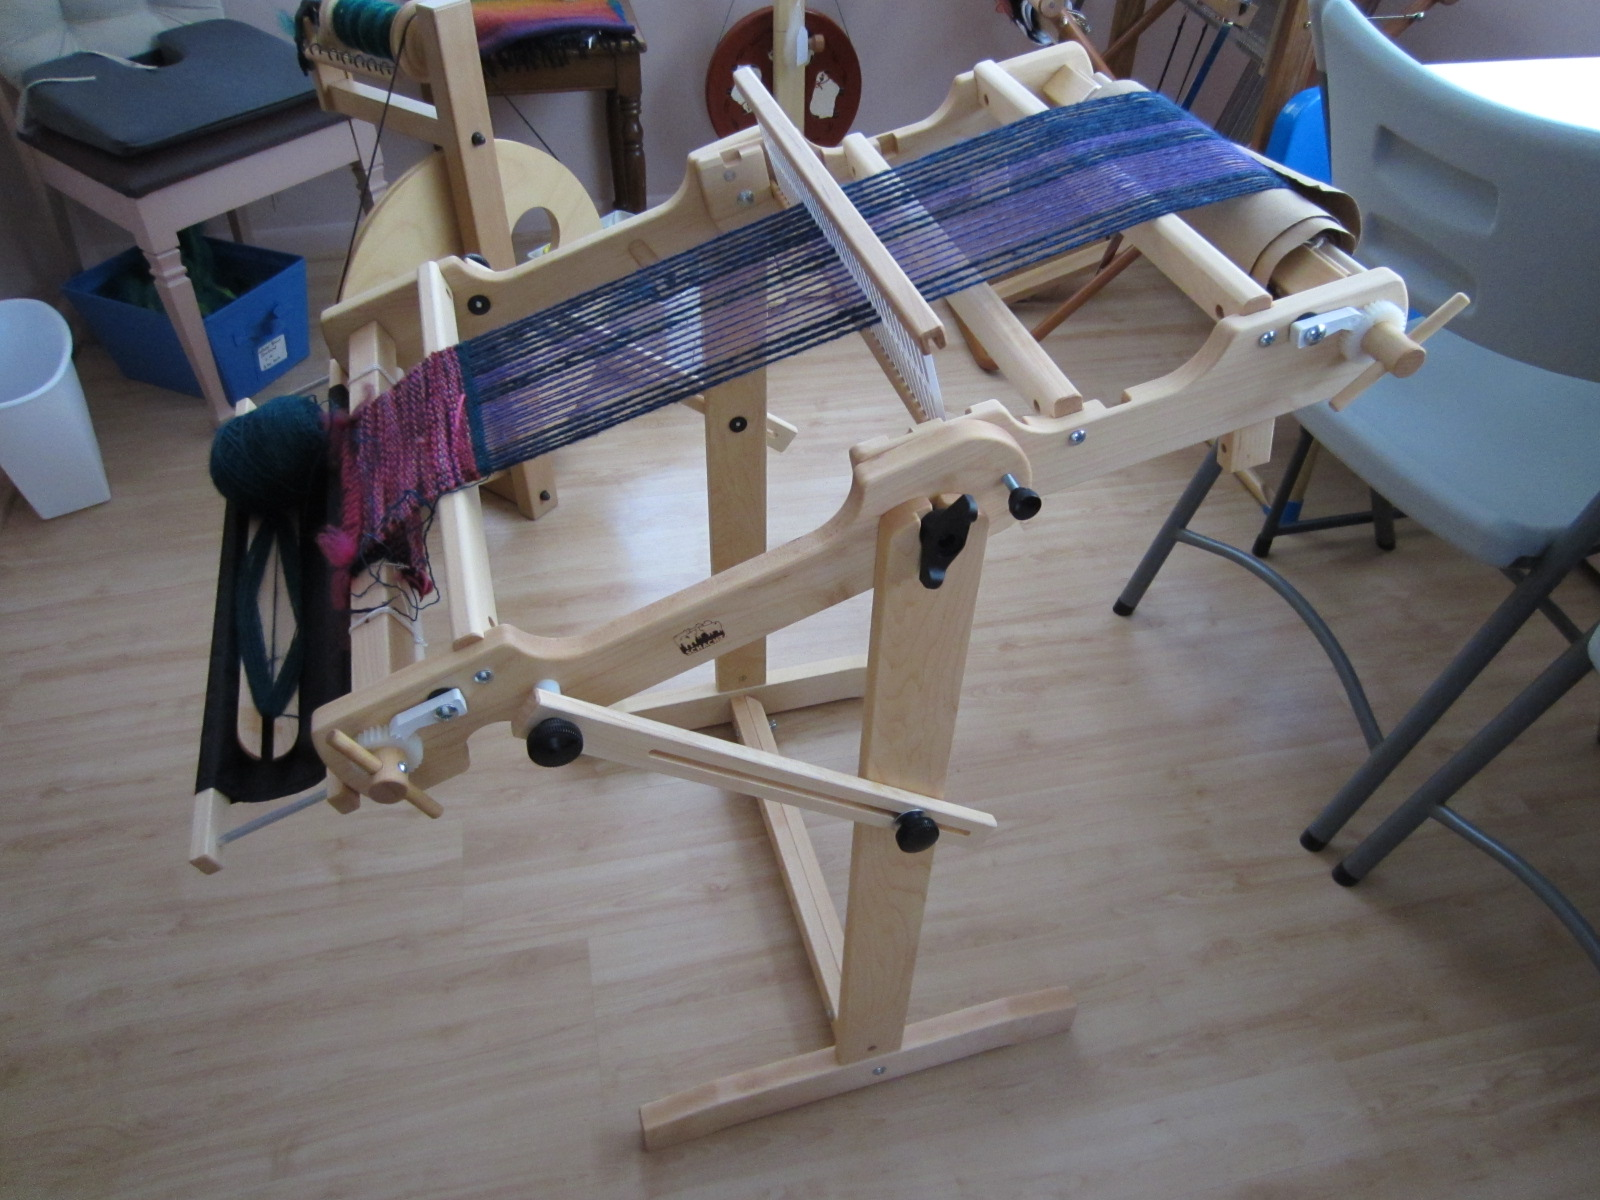 St  Seraphina Fiber Arts: Holiday Gifts - Wheels and a Loom!